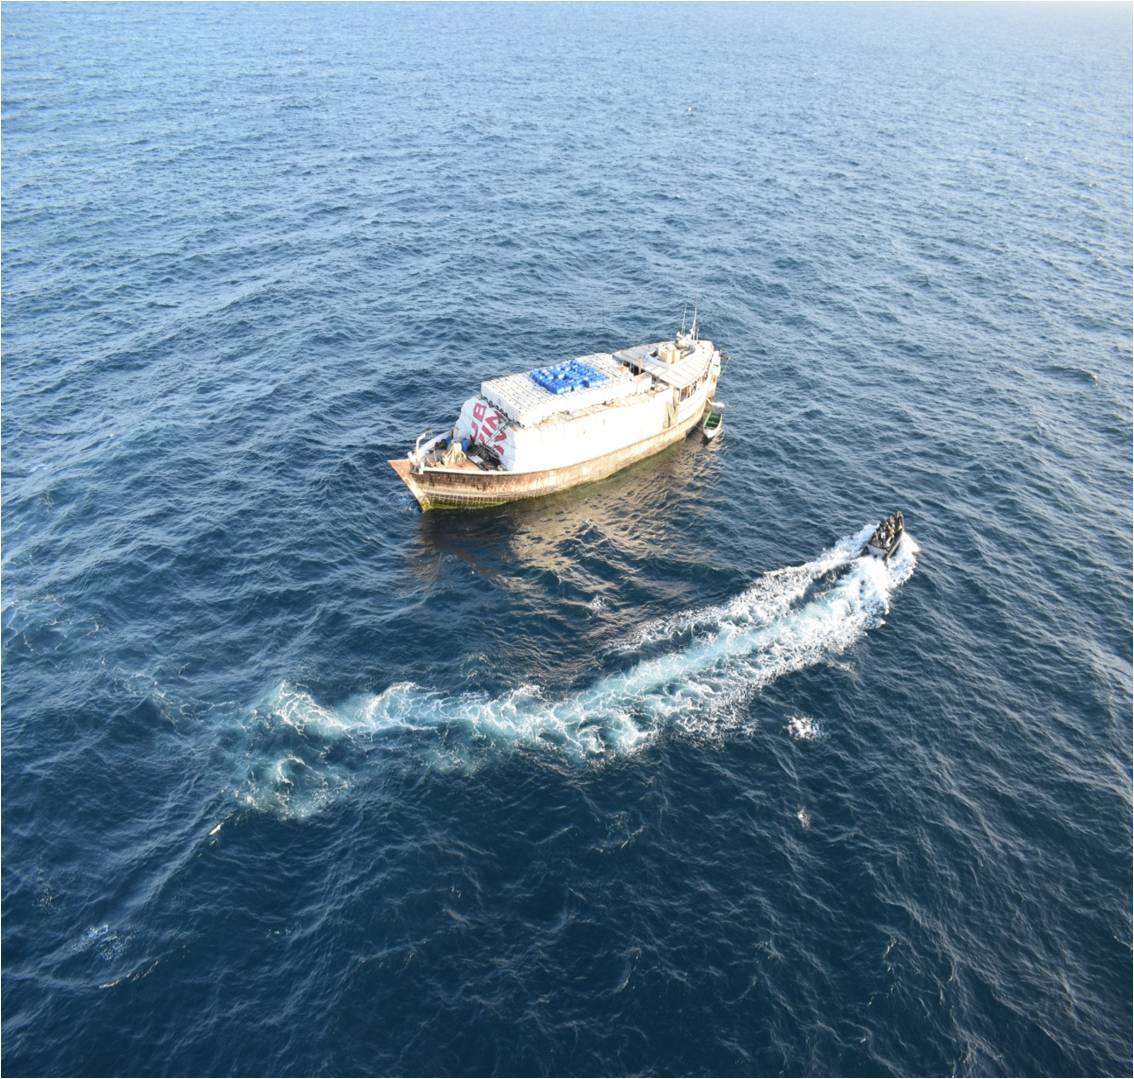 Indian Navy rescues vessel with 13 Indians off Somalia